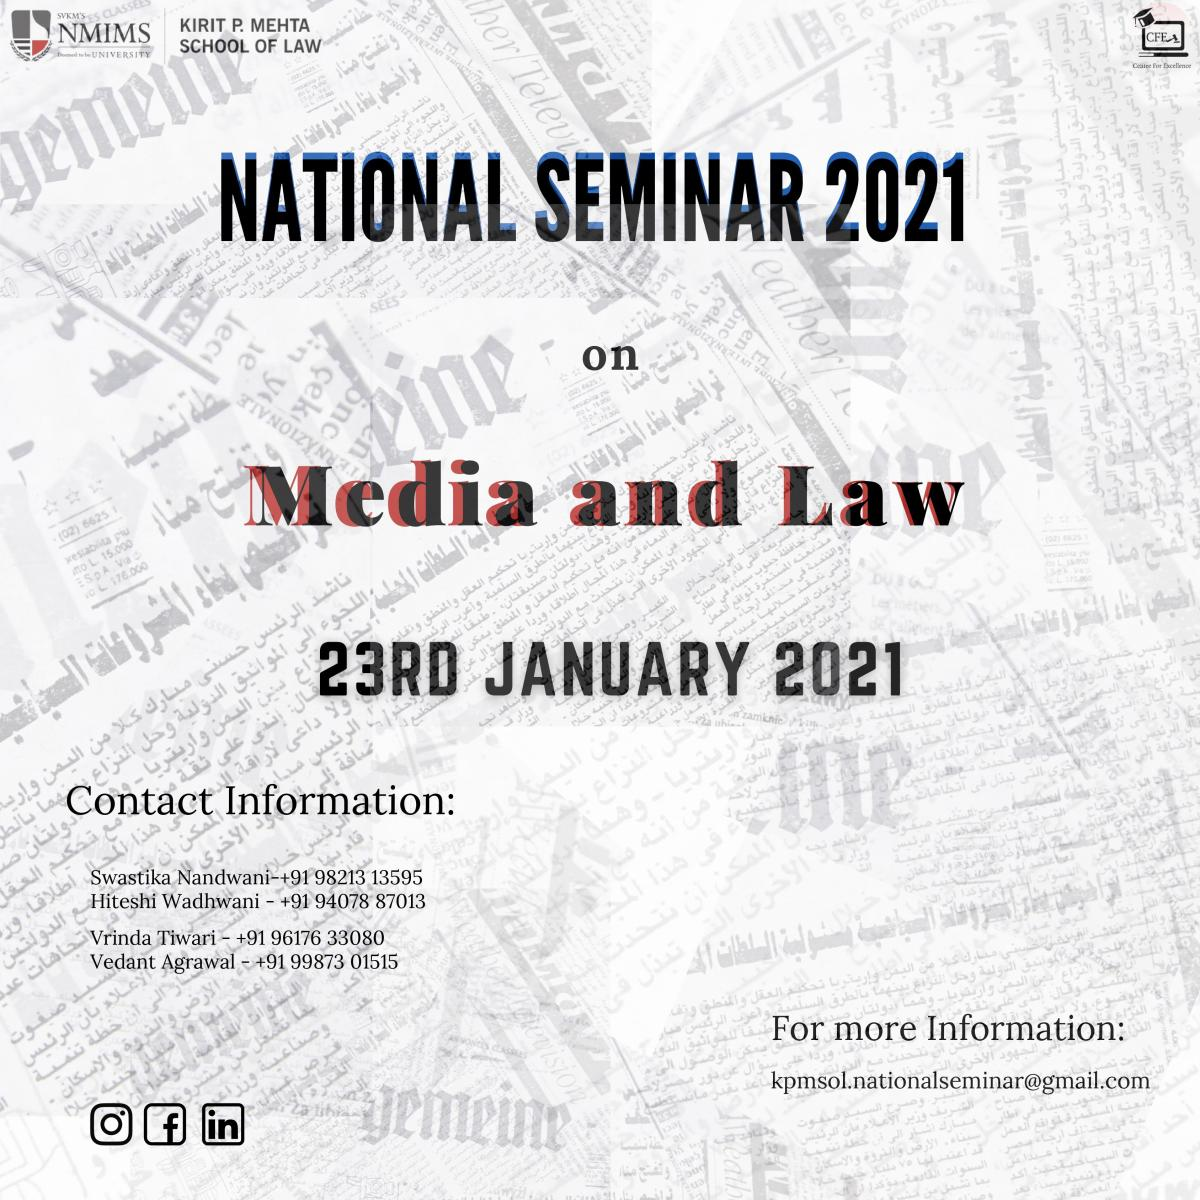 National Seminar 2021 by KiRit P Mehta School of Law, NMIMS